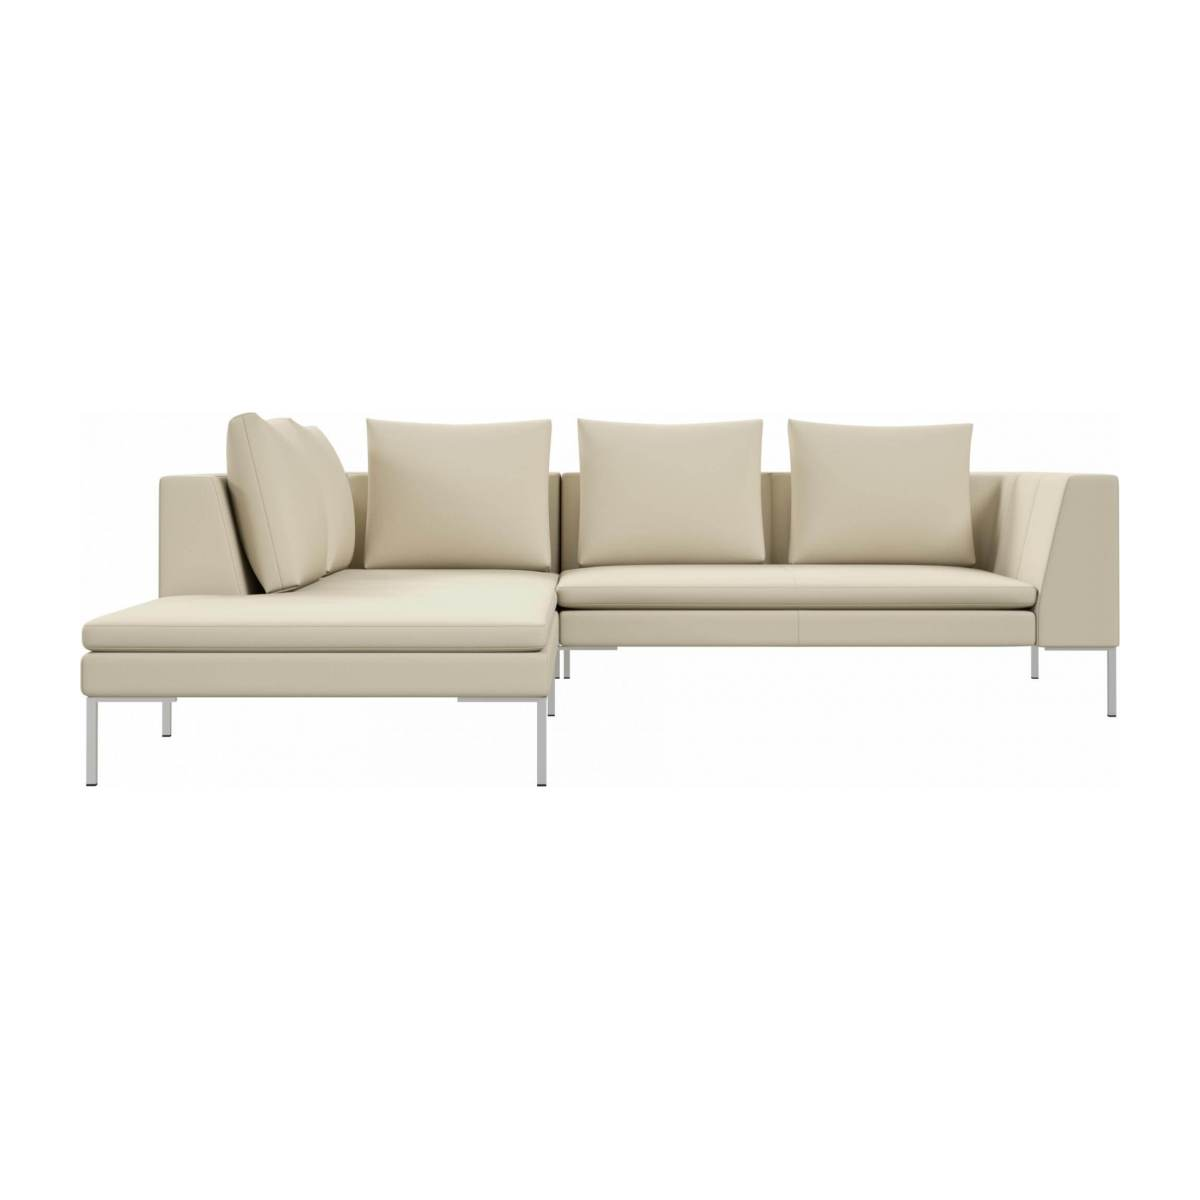 2 seater sofa with chaise longue on the left in Savoy semi-aniline leather, off white  n°1